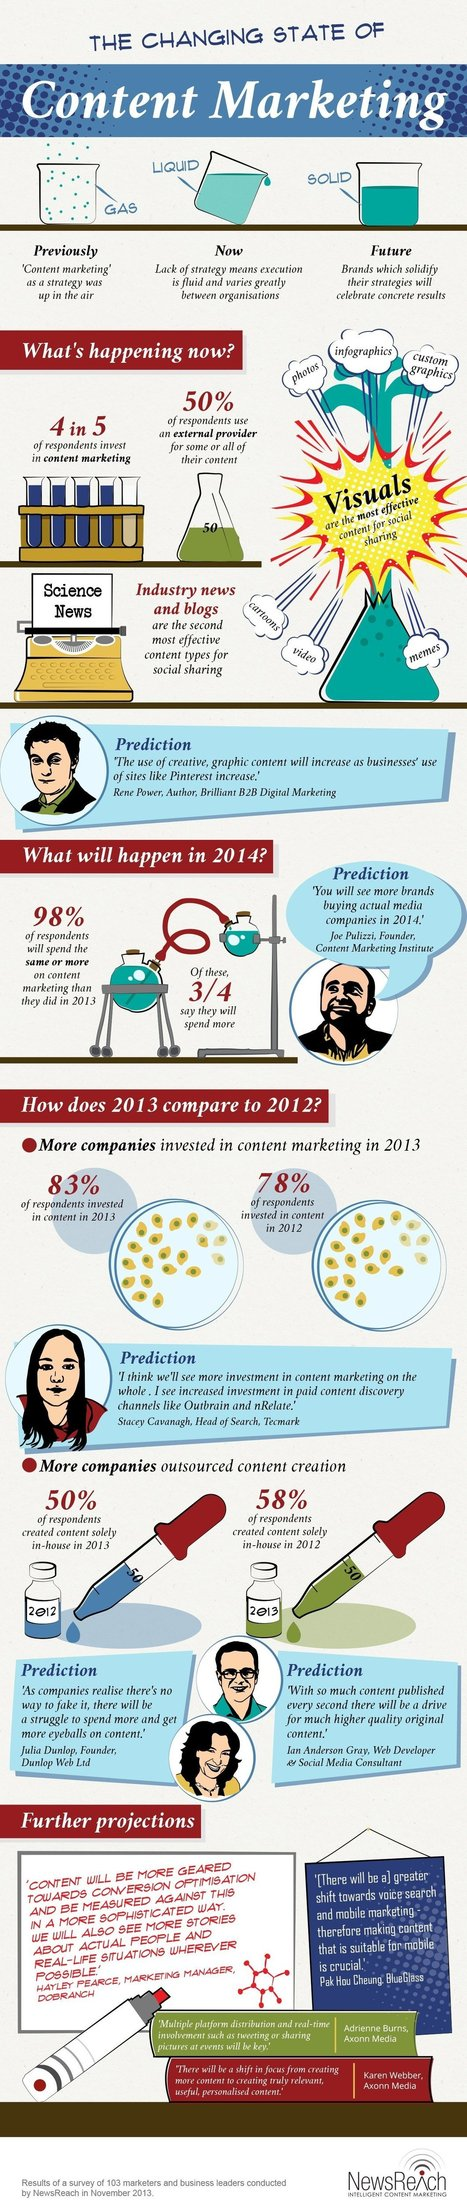 The Changing State of Content Marketing [INFOGRAPHIC] | #SeriouslySocial | digital business IT marketing | Scoop.it